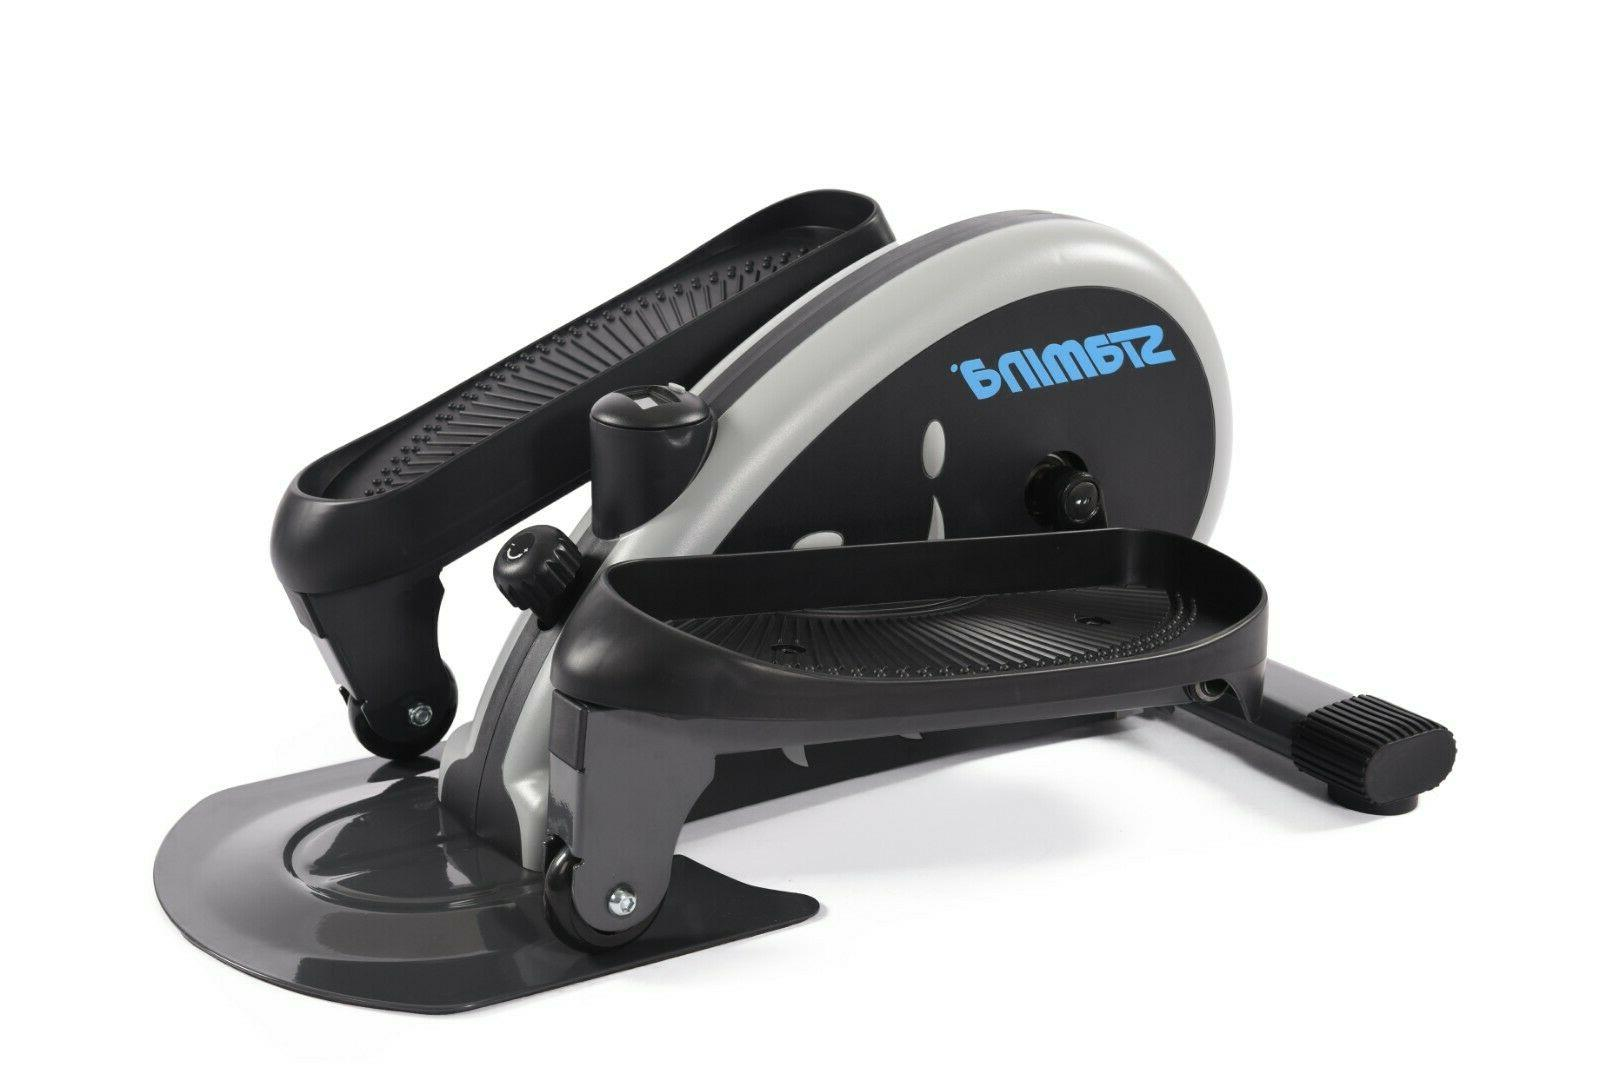 Stamina InMotion E-1000 Elliptical Trainer Exercise Sport Co